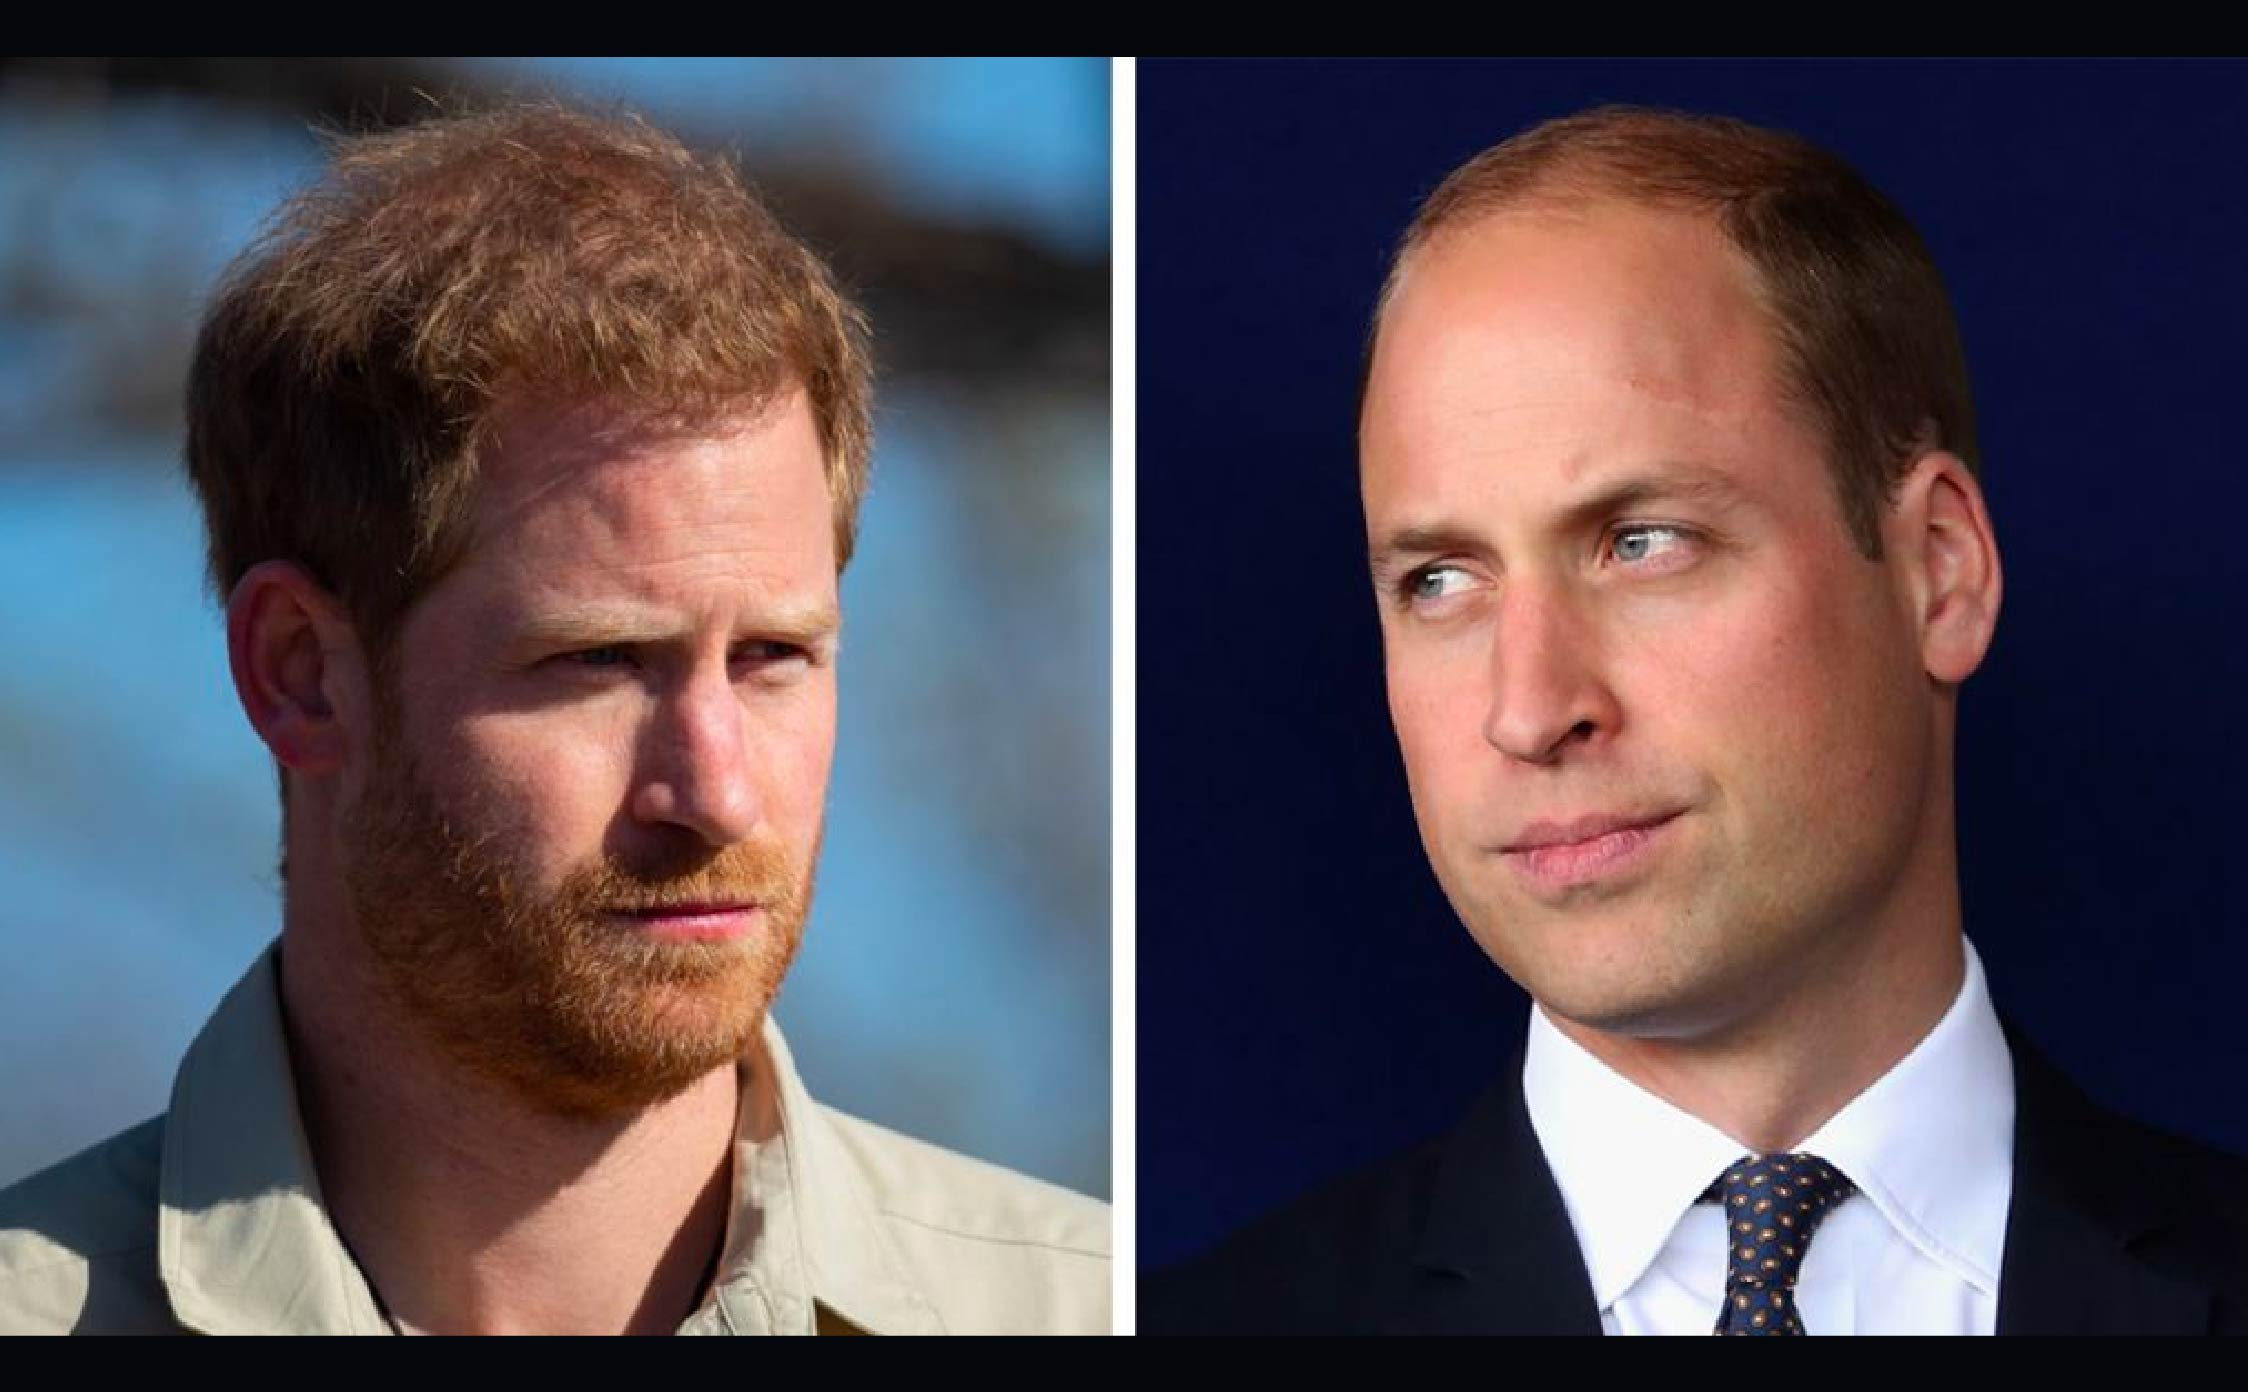 We Now Know What William Said to Harry After Oprah Interview...Scathing and Spot-On